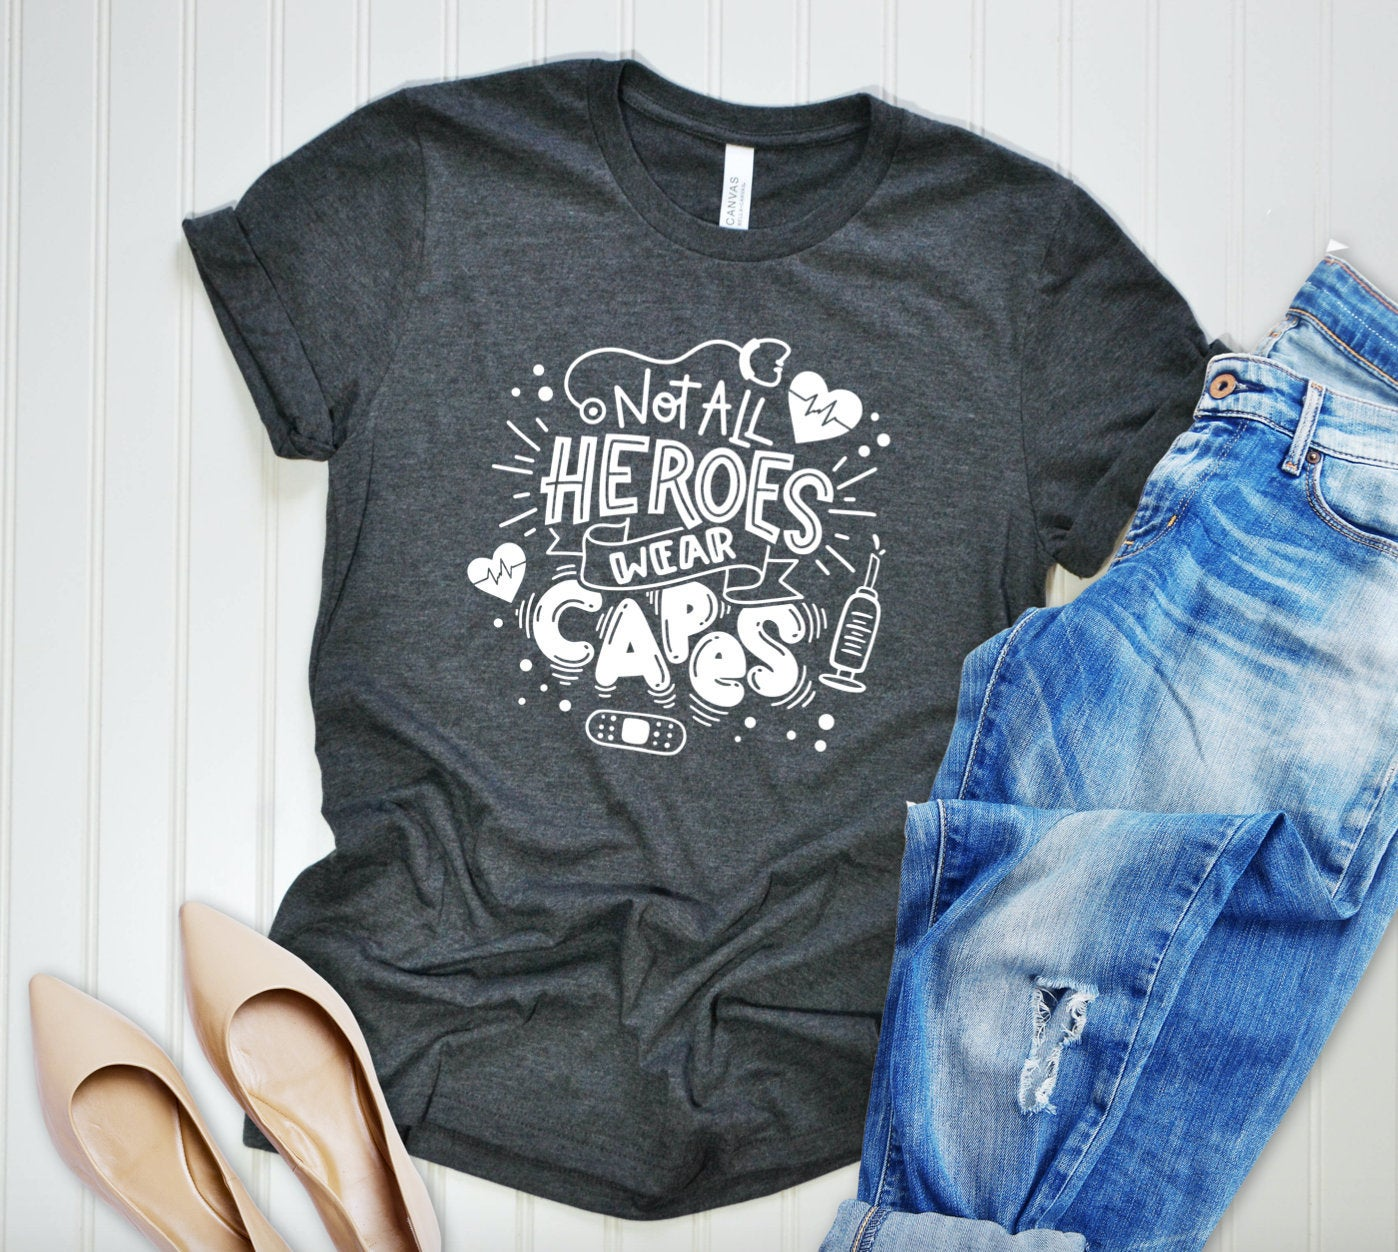 Not All Heroes Wear Capes Unisex T-shirt - Nurse Shirt - Nurse Aide Shirt - Medical Staff Shirt - Essential Worker Tshirt